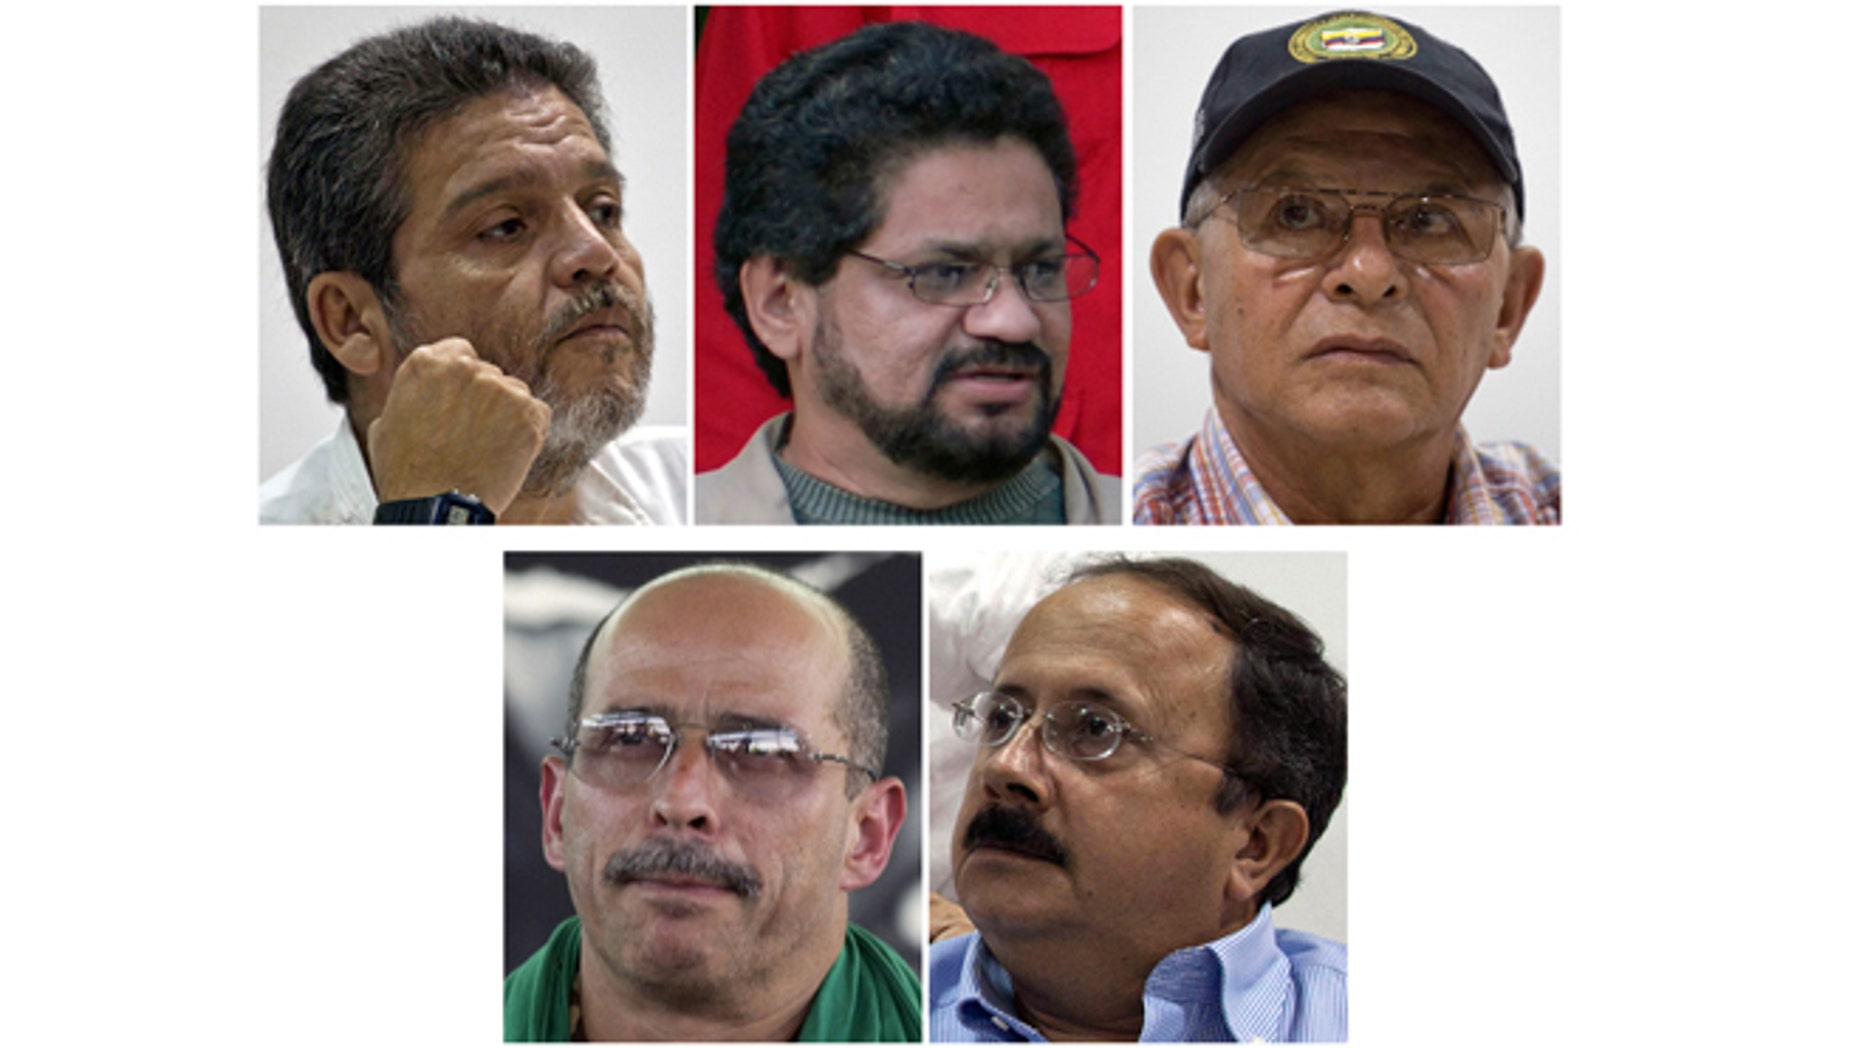 Five main negotiators representing the FARC, in the peace talks with the Colombian government, from left: Marco Leon Calarca; Ivan Marquez; Ricardo Tellez; Simon Trinidad; and Andres Paris.